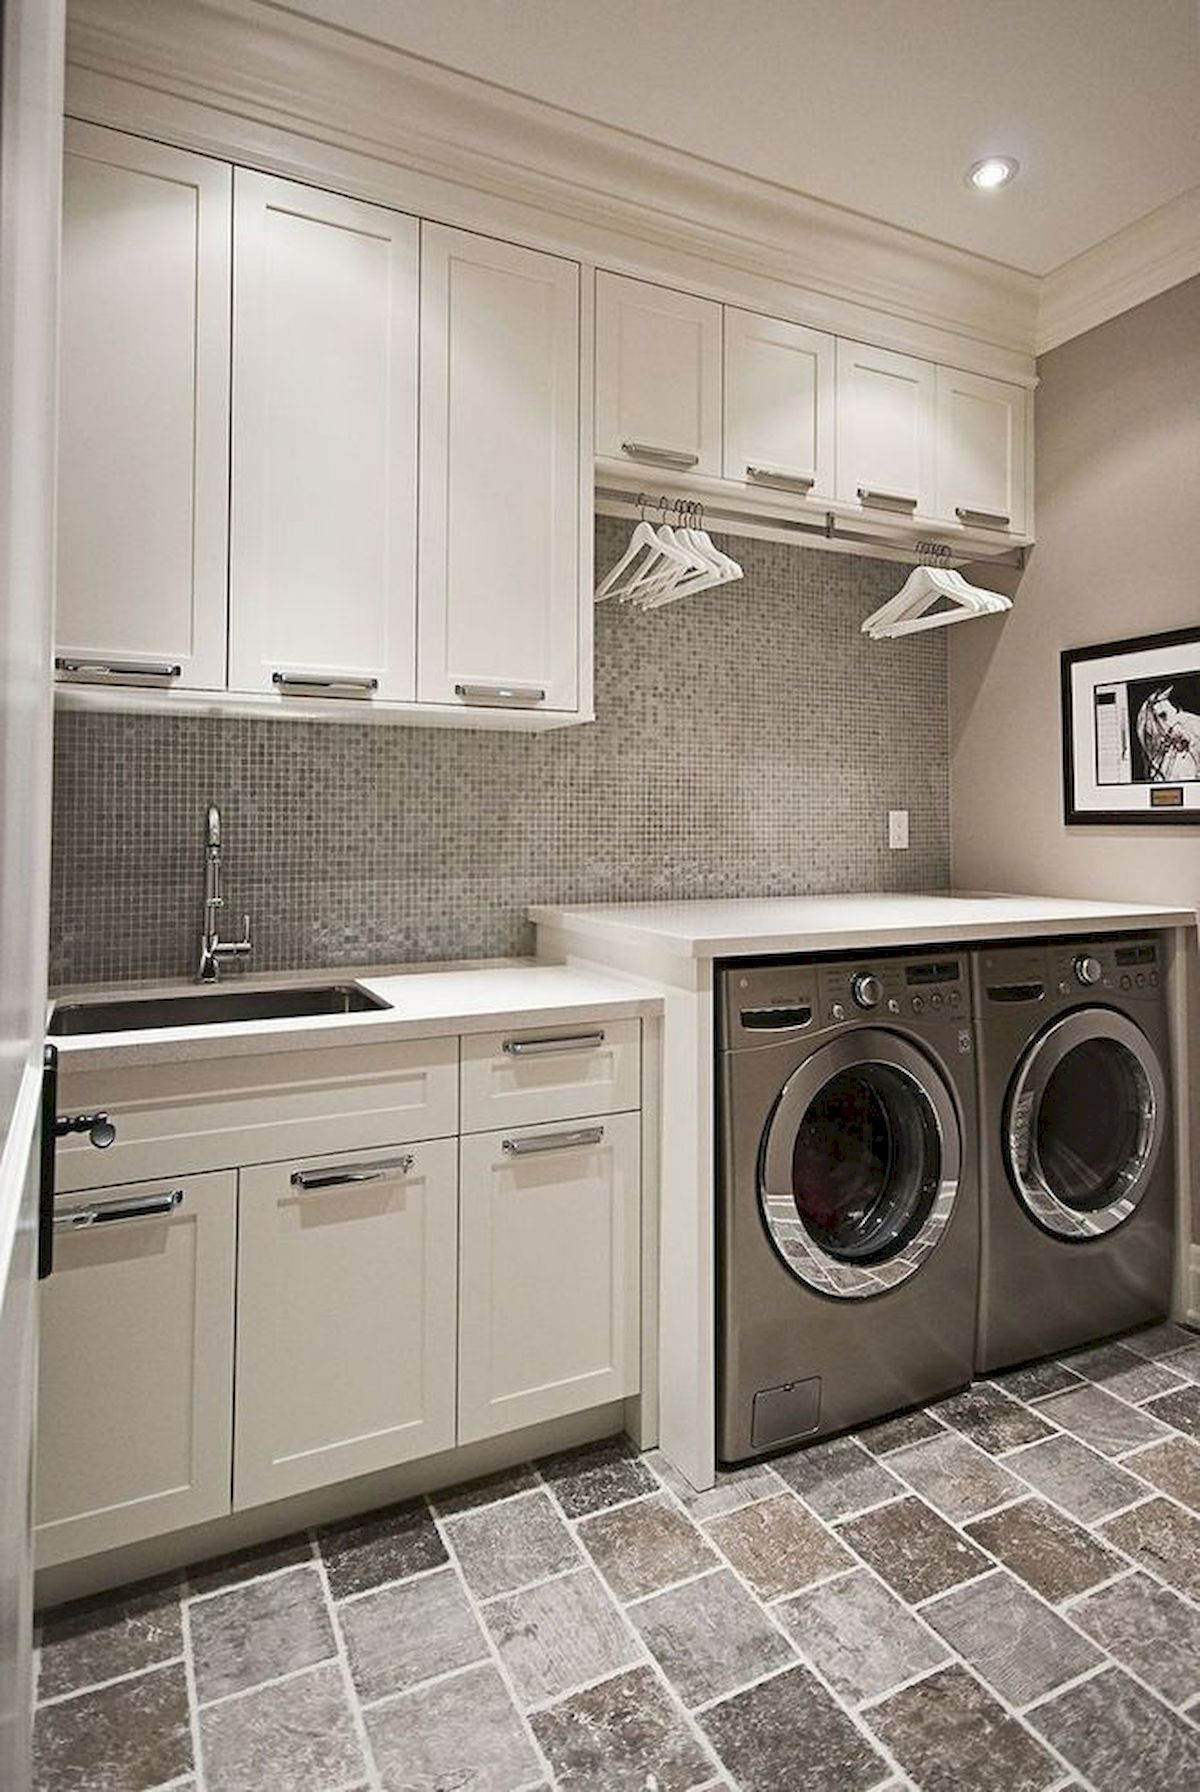 Efficient Laundry Room Designs Efficient Laundry Room Designs Cabinets give you a space to hide these items away while keeping the #SmallRoomDesignsCheap